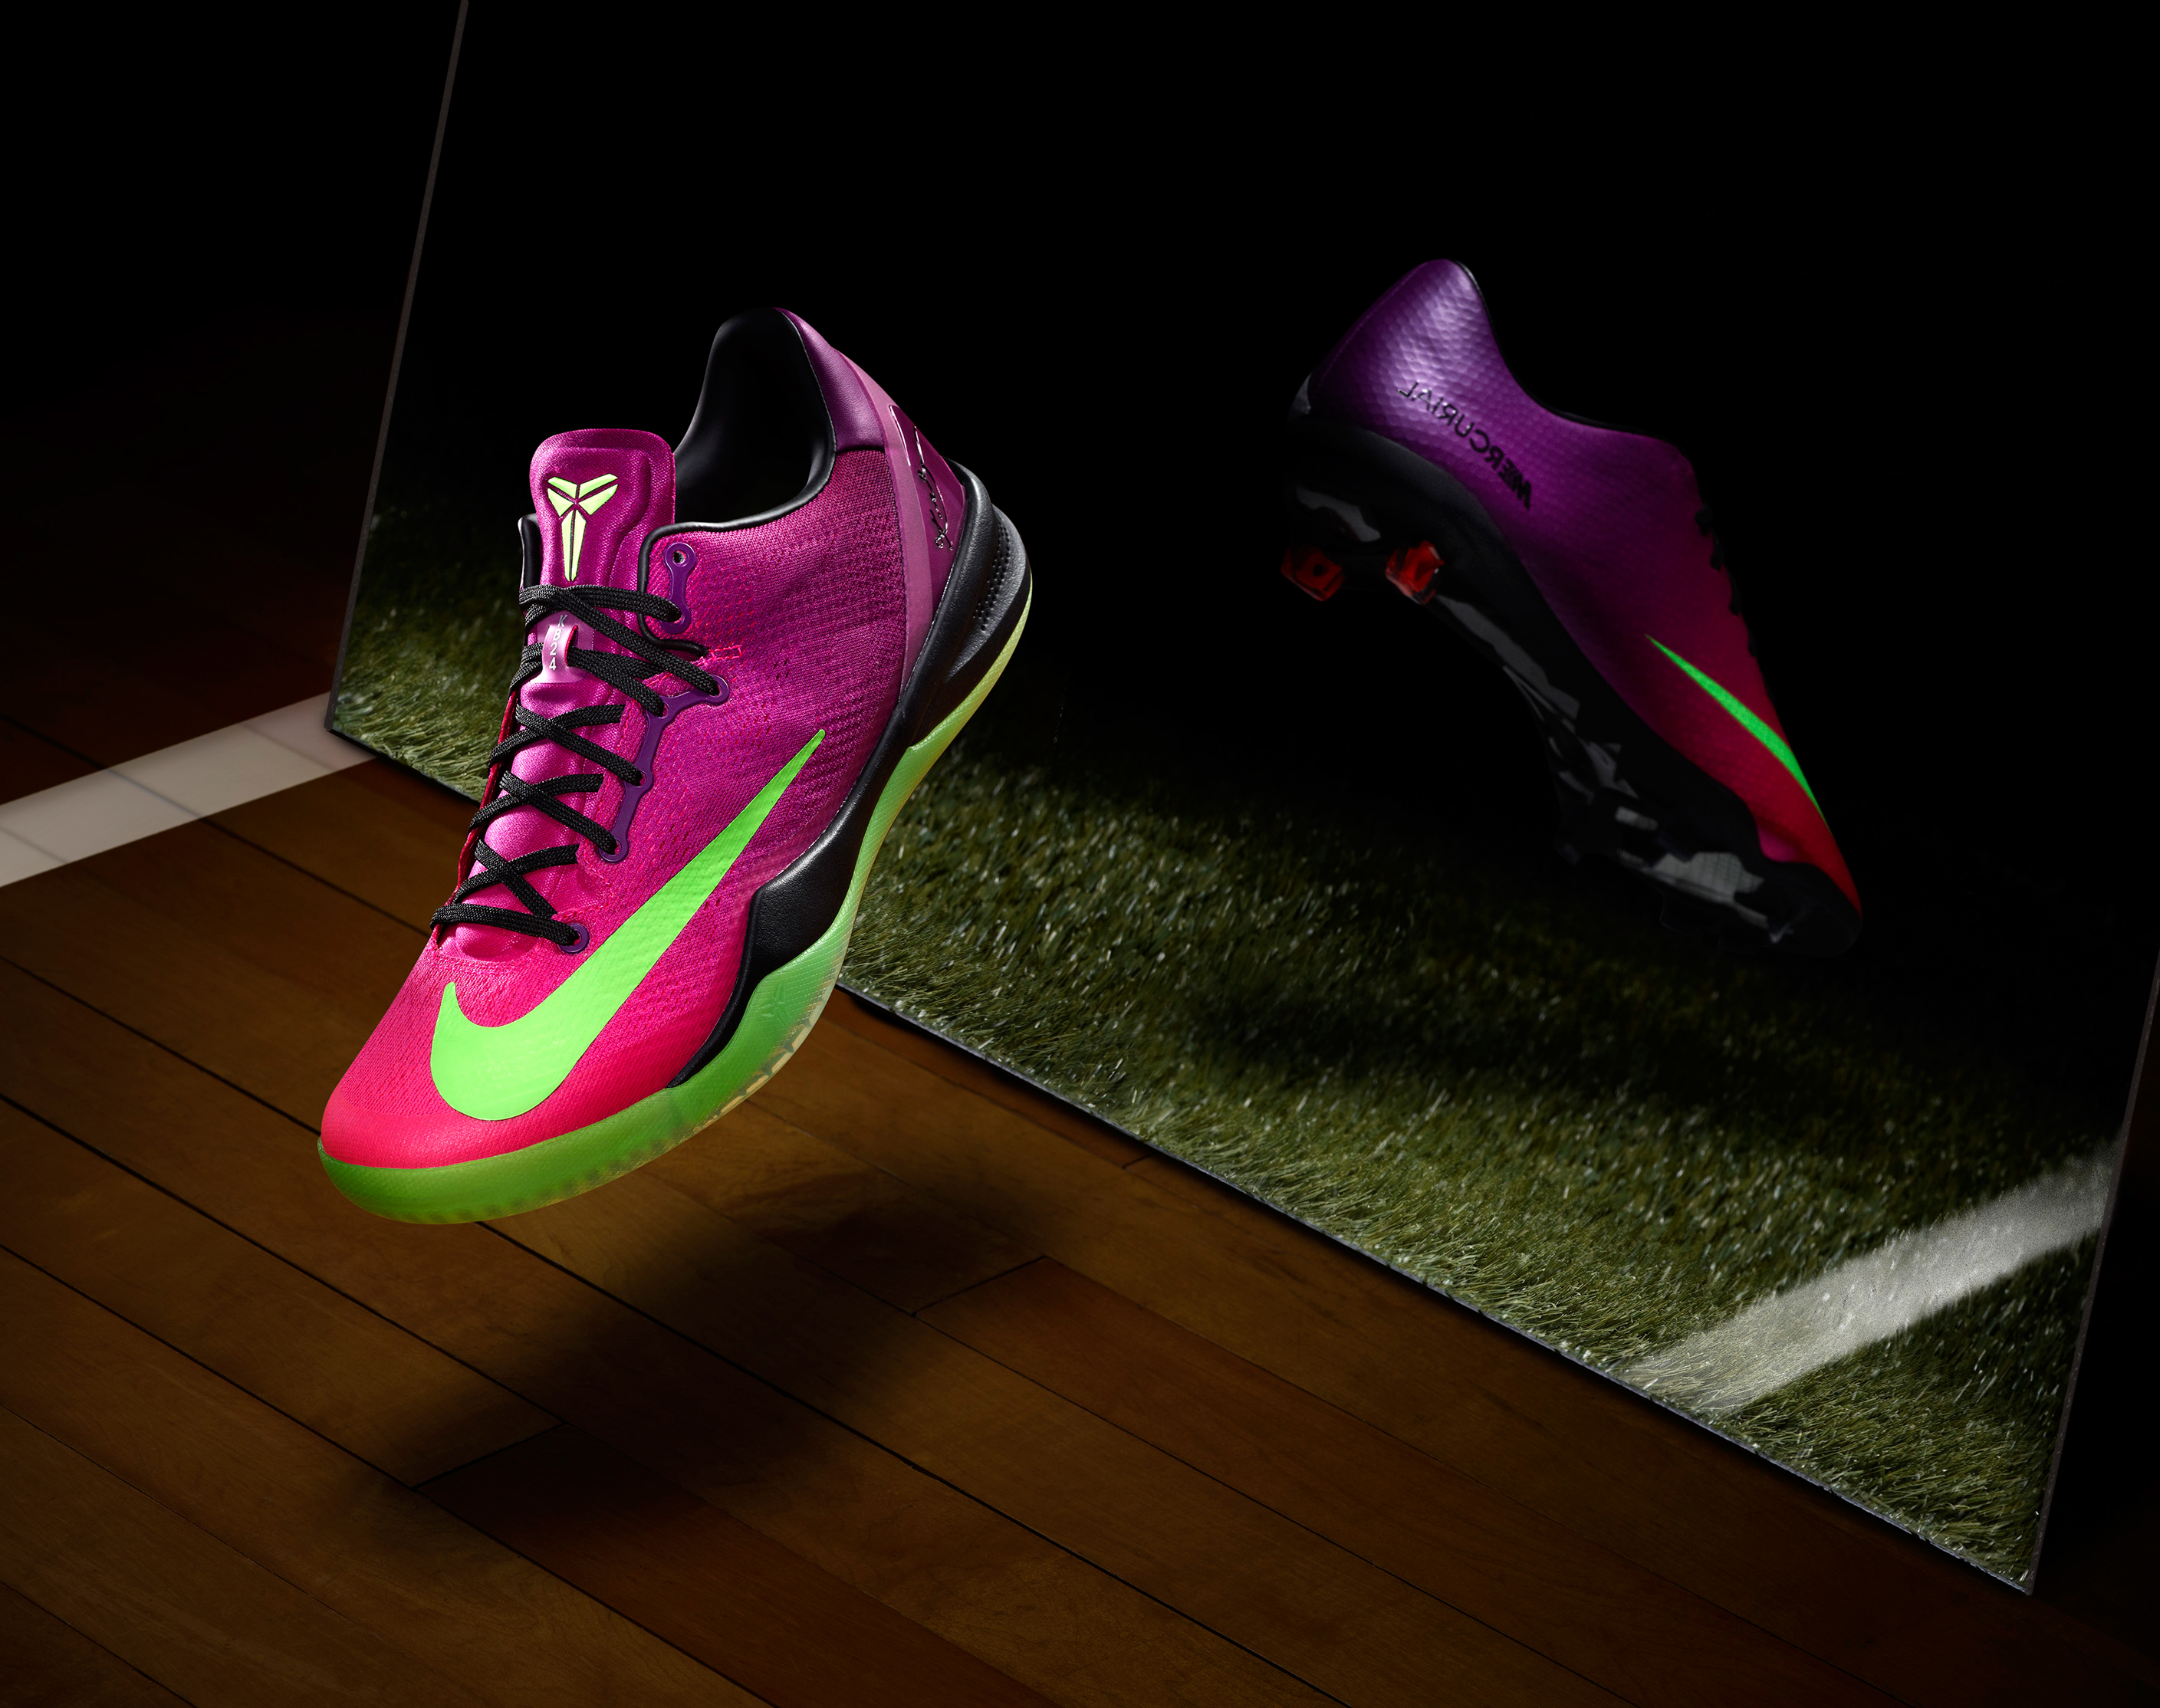 neon training shoes pink football shoes nike